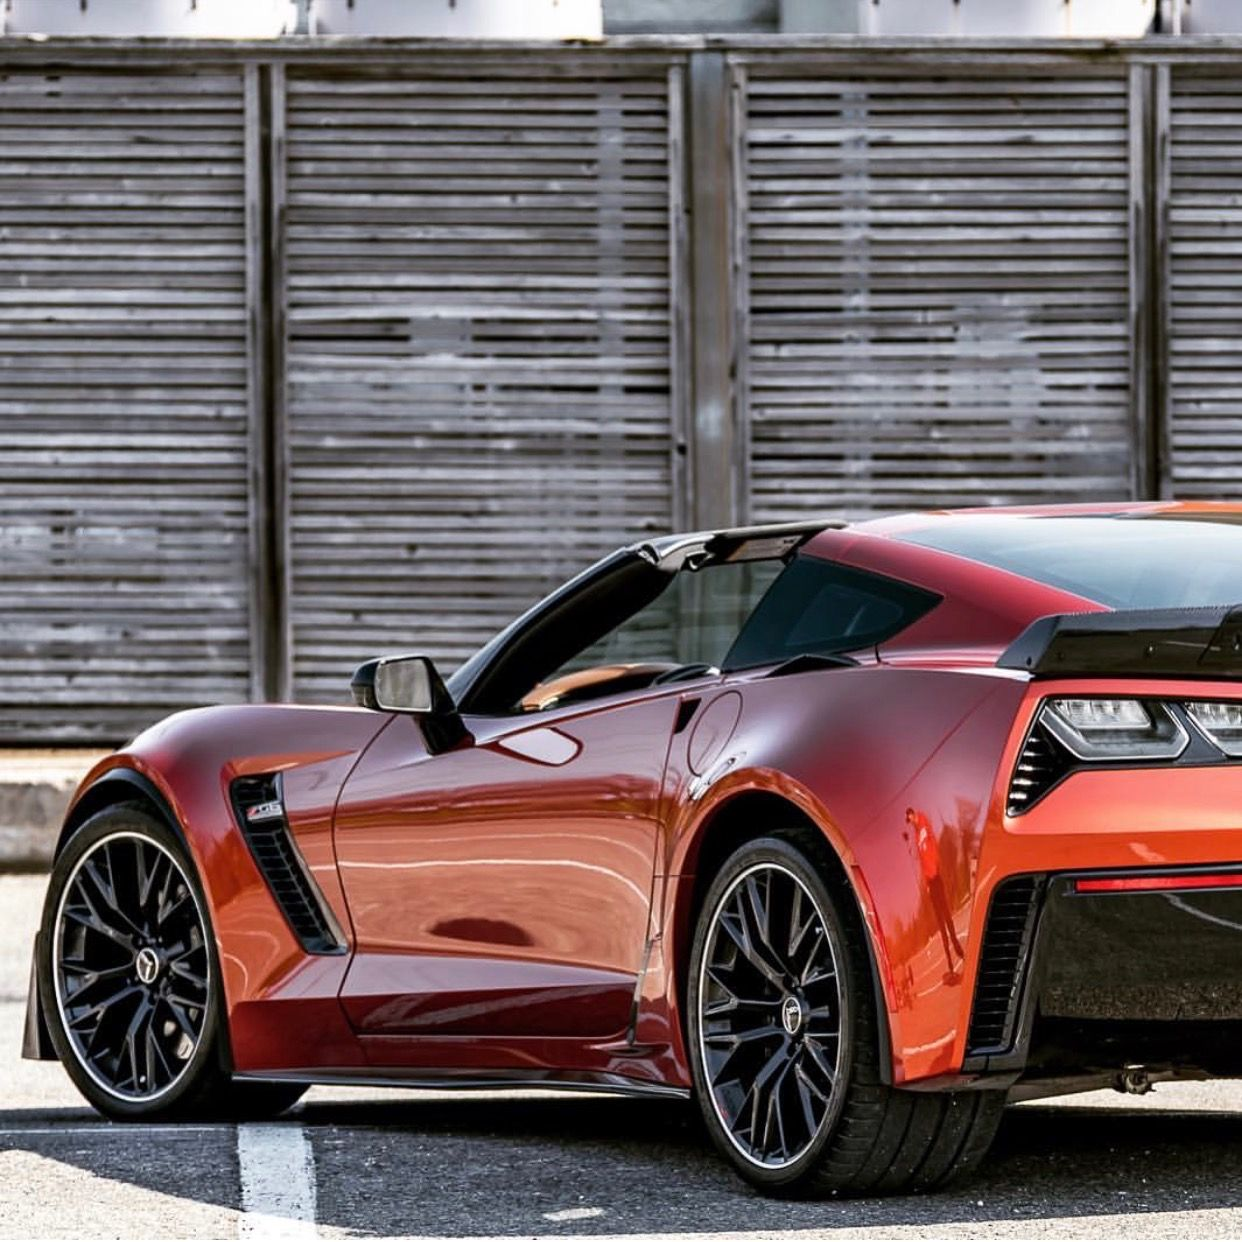 Chevrolet Corvette Z06 Coupe Painted In Daytona Sunrise Orange